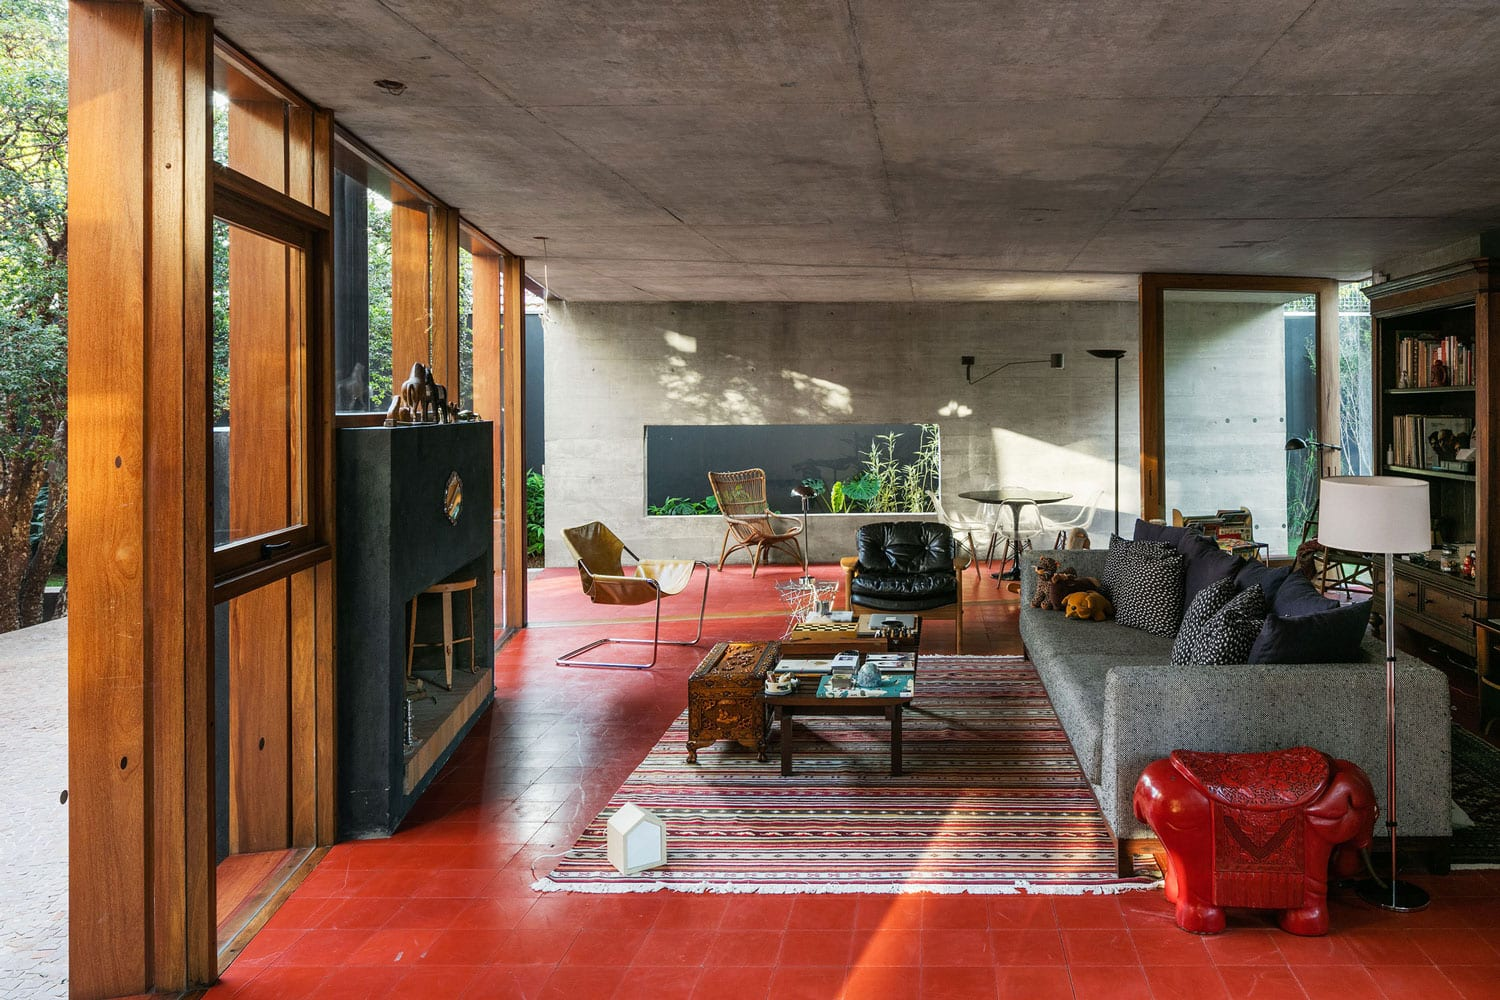 239 House in São Paulo, Brazil by UNA Arquitetos | Yellowtrace